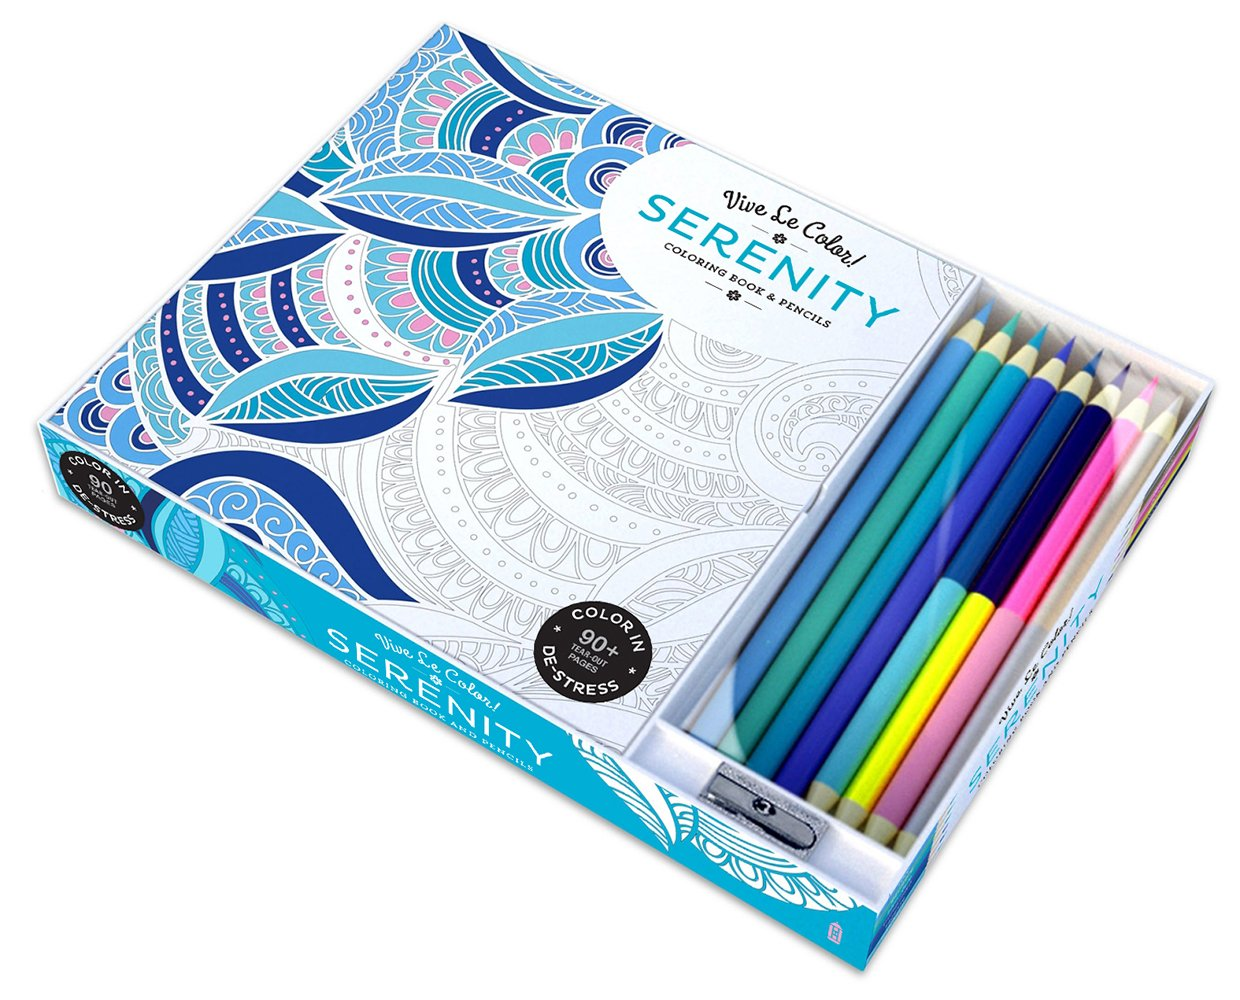 Vive Le Color Serenity Adult Coloring Book And Pencils Therapy Kit Abrams Noterie 9781419720543 Books